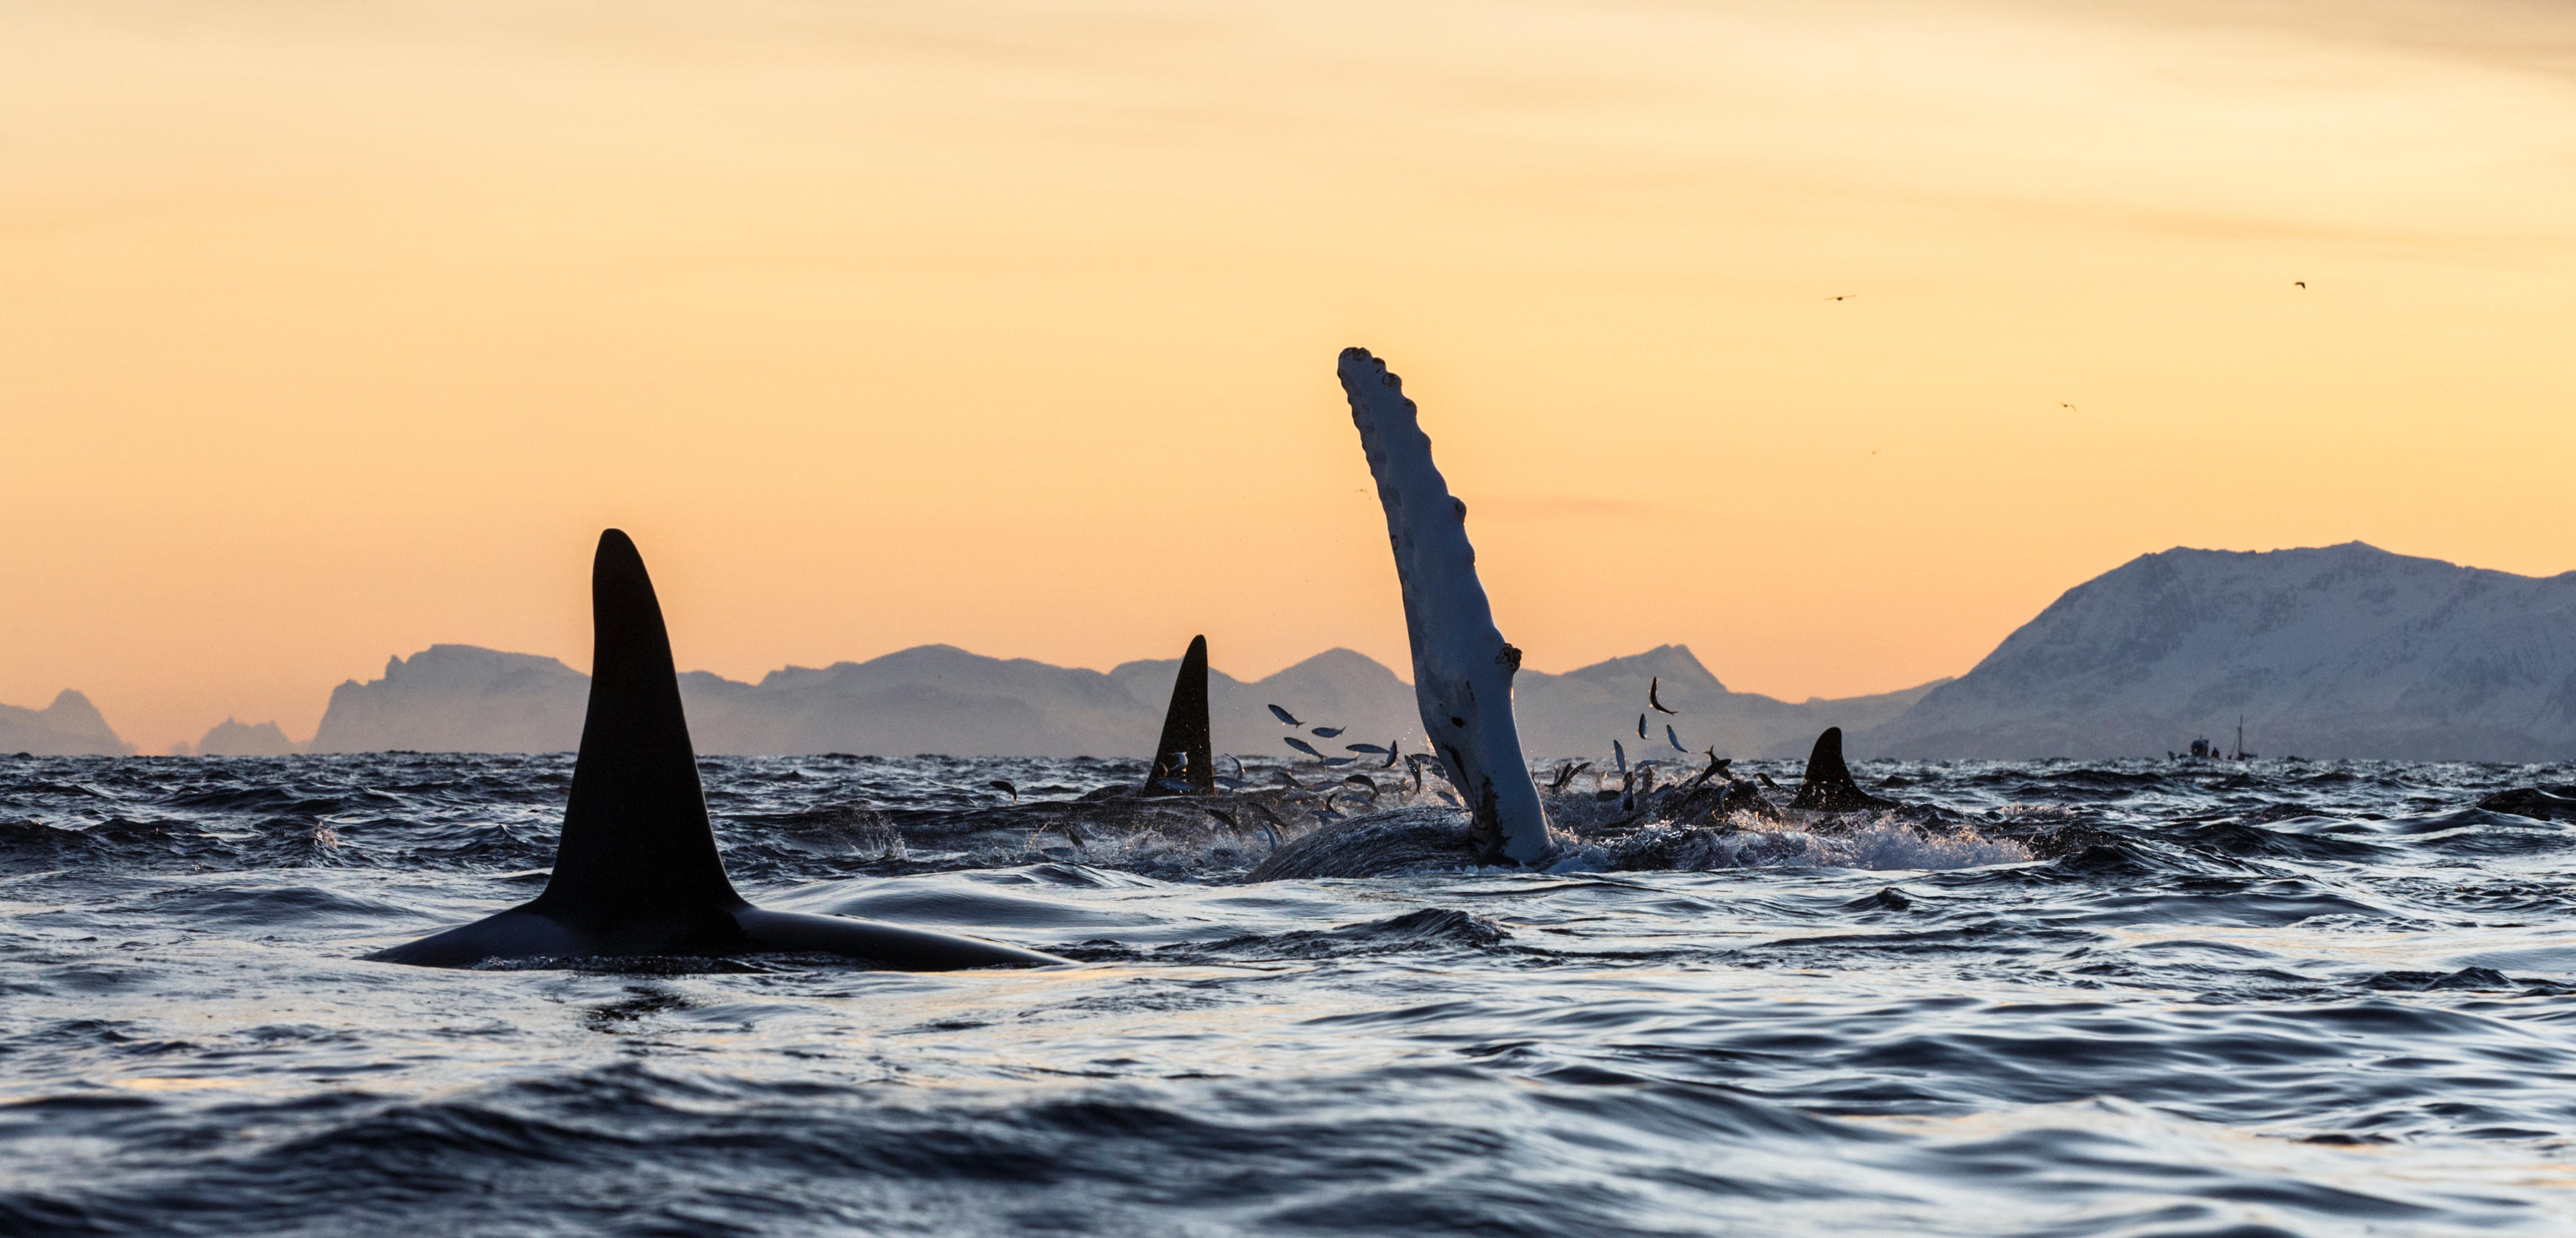 for some reason humpback whales have taken it upon themselves to interfere with killer whales hunting attempts photo by nature picture libraryalamy - Images Of Whales